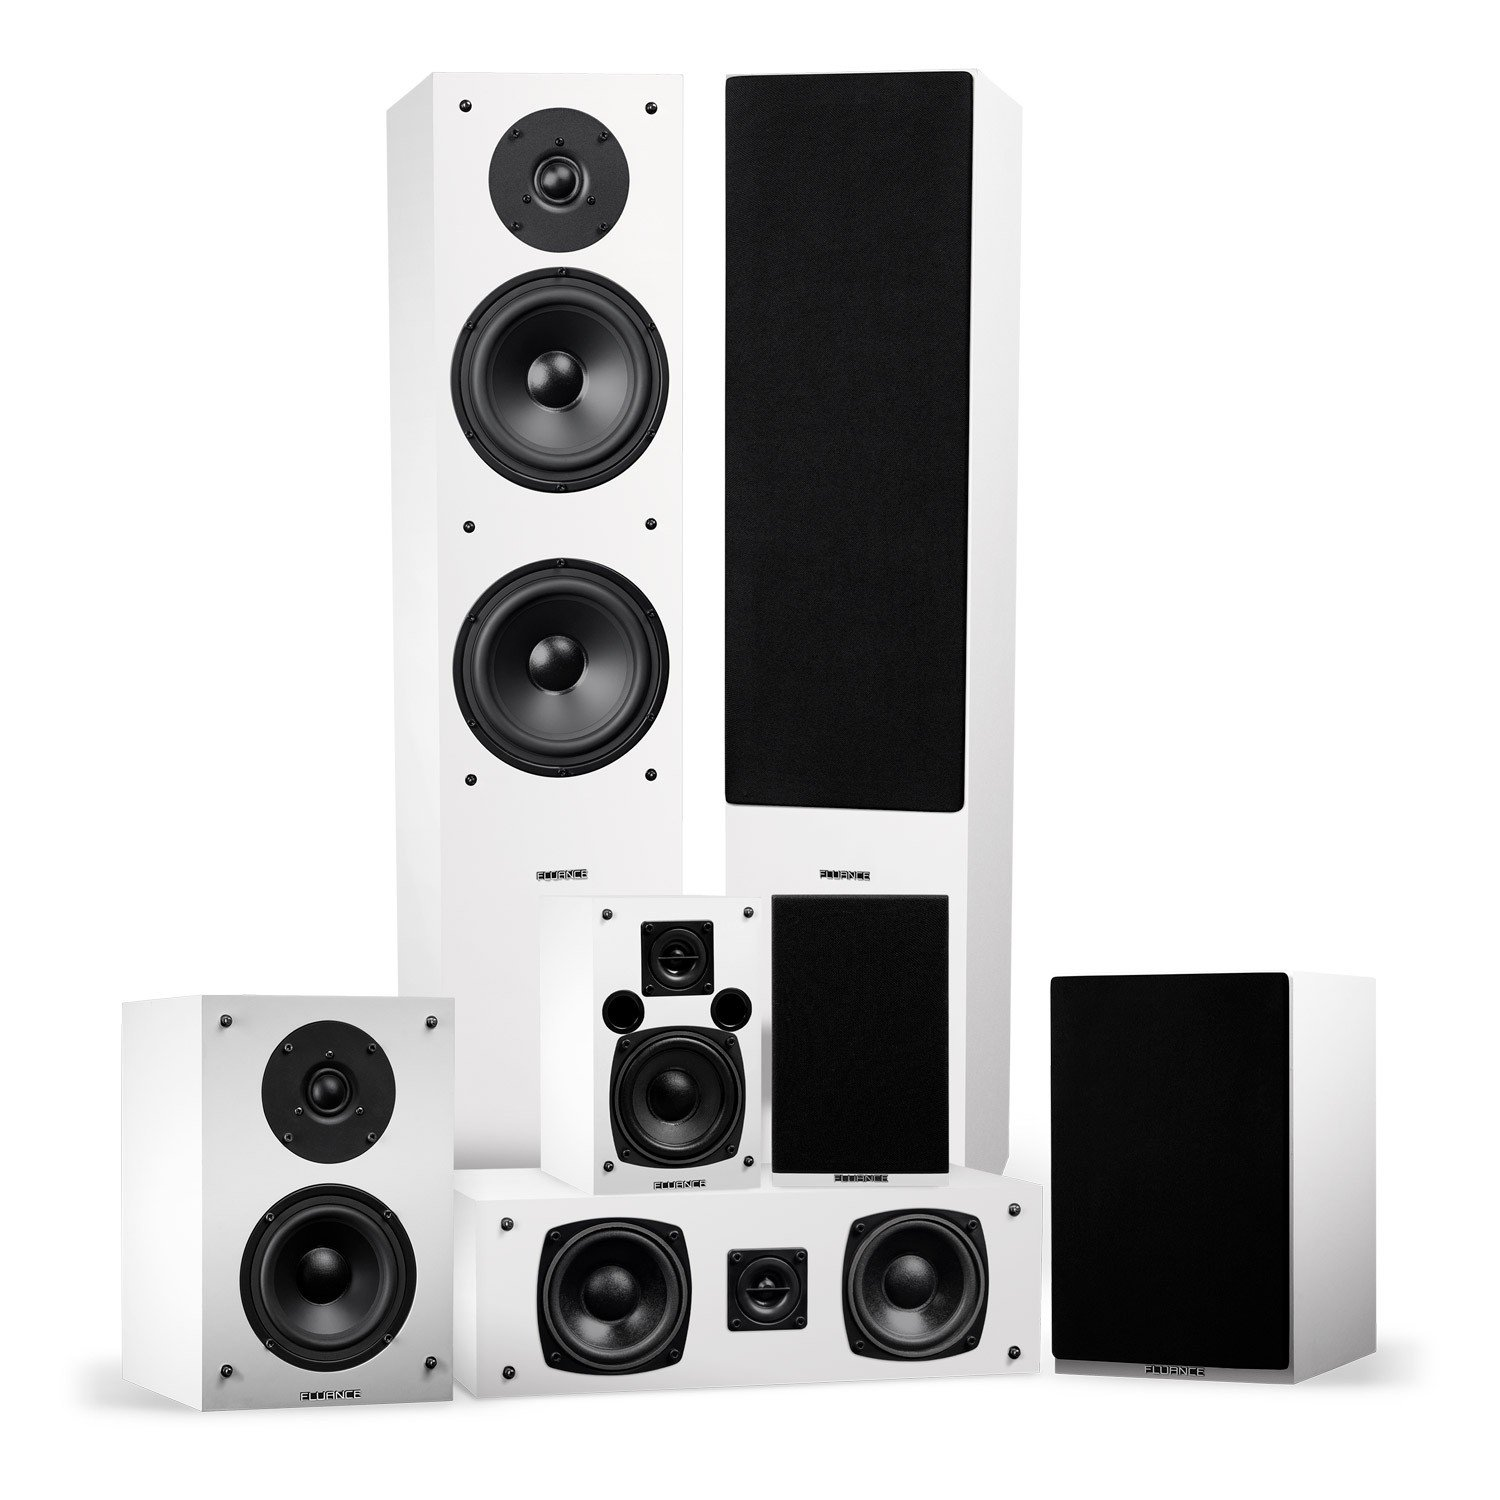 Elite Series Surround Sound Home Theater 7.0 Channel Speaker System - White - Main